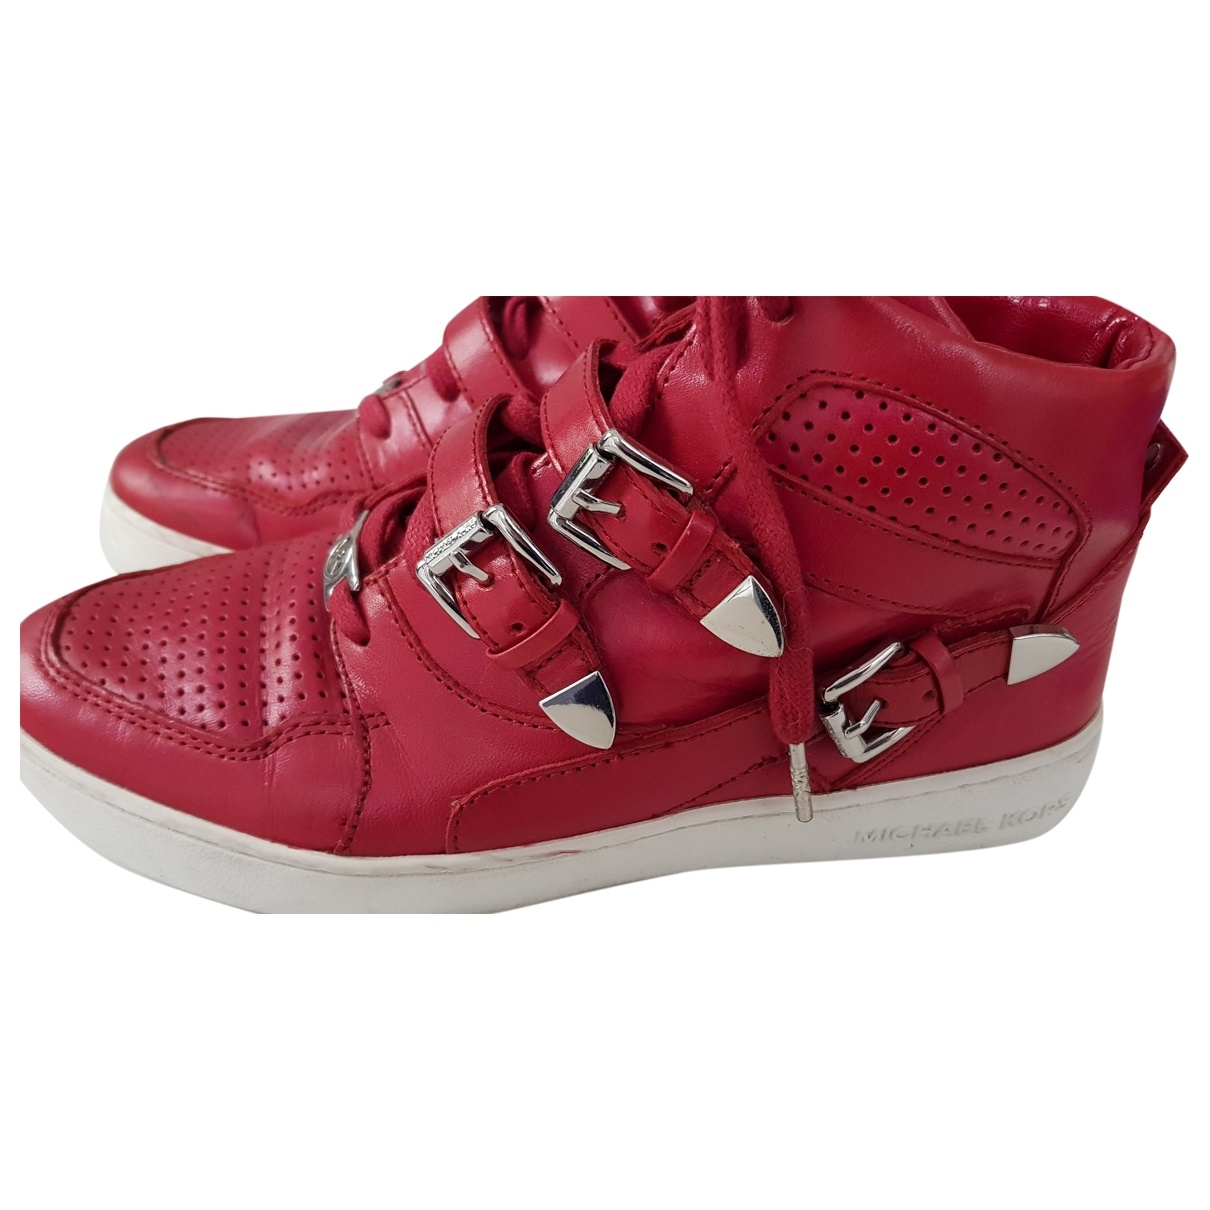 Michael Kors \N Red Leather Trainers for Women 39 EU